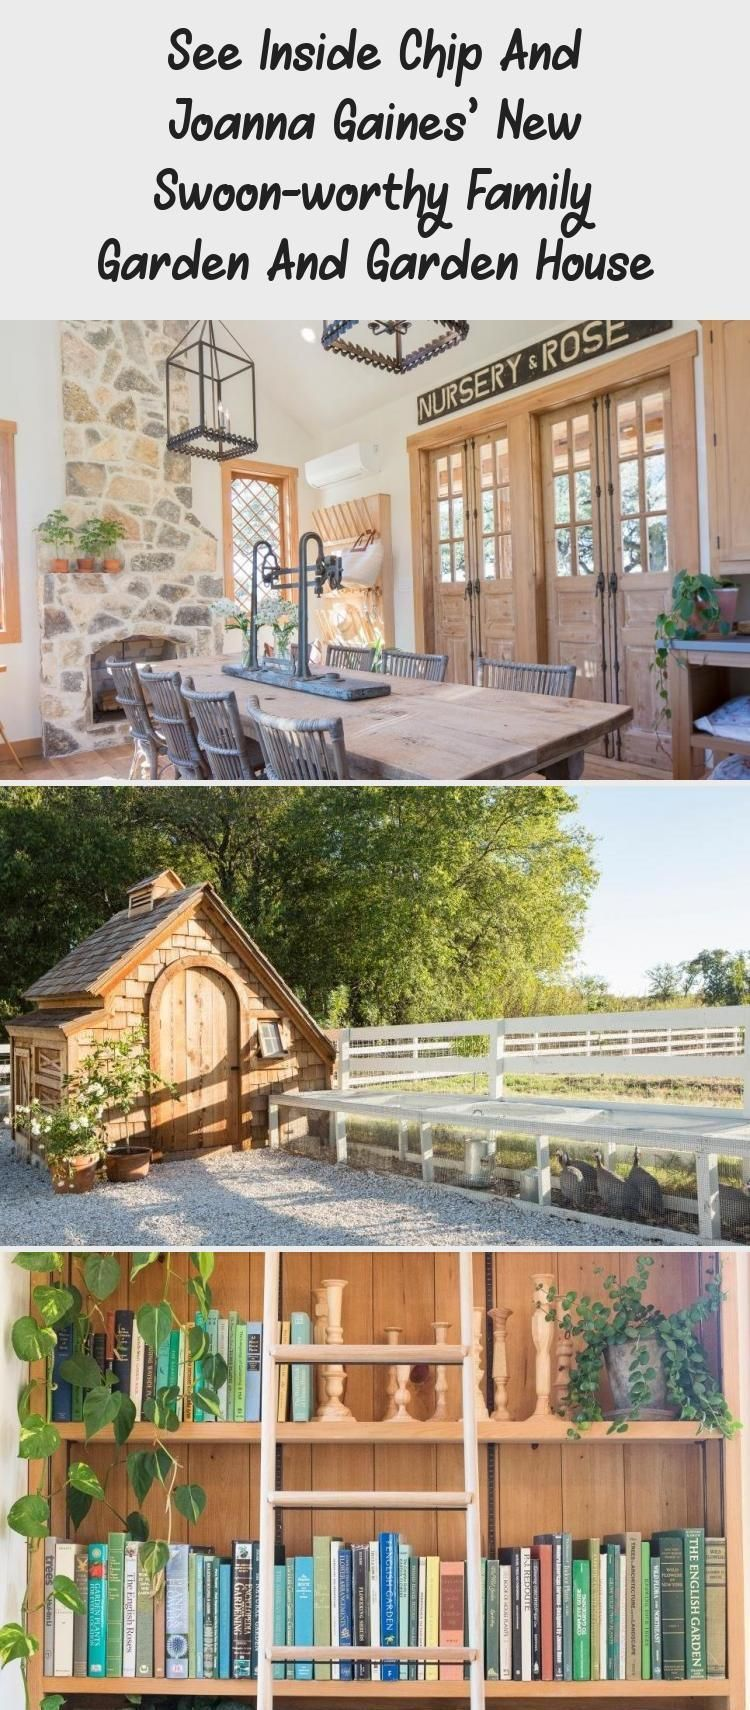 See Inside Chip And Joanna Gaines' New Swoon-worthy Family Garden And Garden House #chipandjoannagainesfarmhouse See Inside Chip and Joanna Gaines' New Swoon-Worthy Family Garden and Garden House #Smallgardenbeds #Enclosedgardenbeds #Roundgardenbeds #gardenbedsPatio #Succulentgardenbeds #chipandjoannagainesfarmhouse